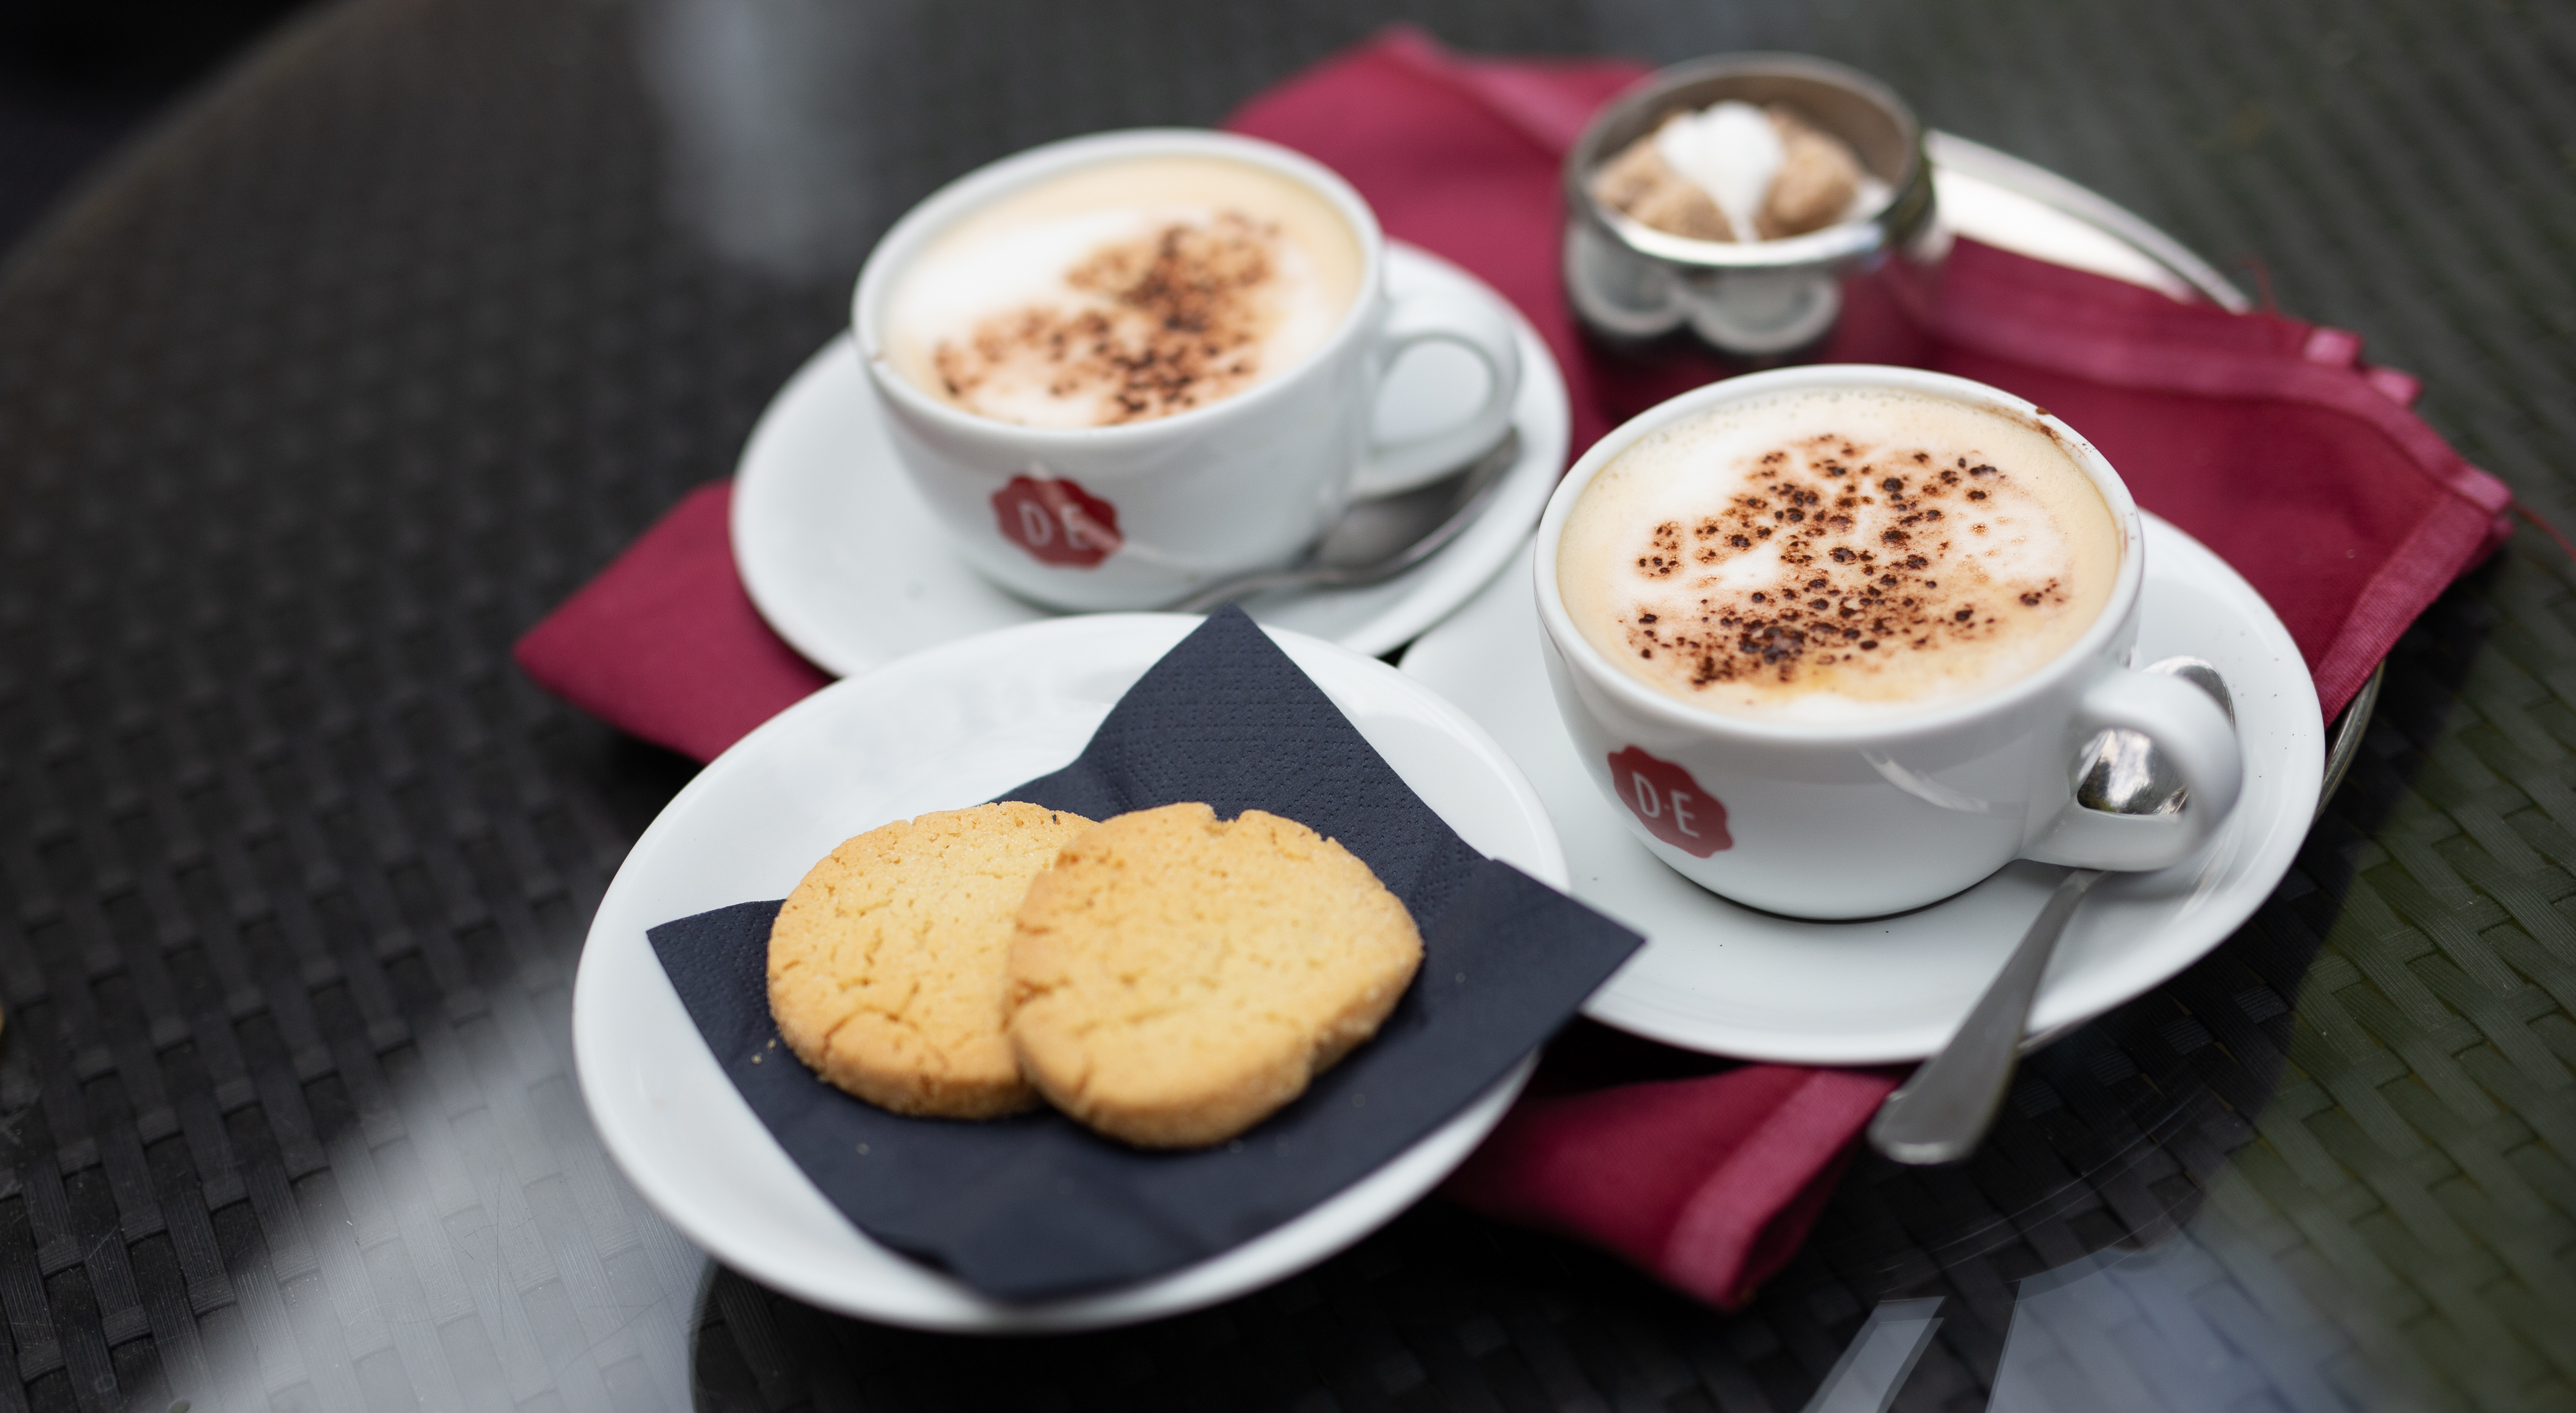 Coffee and homemade biscuits